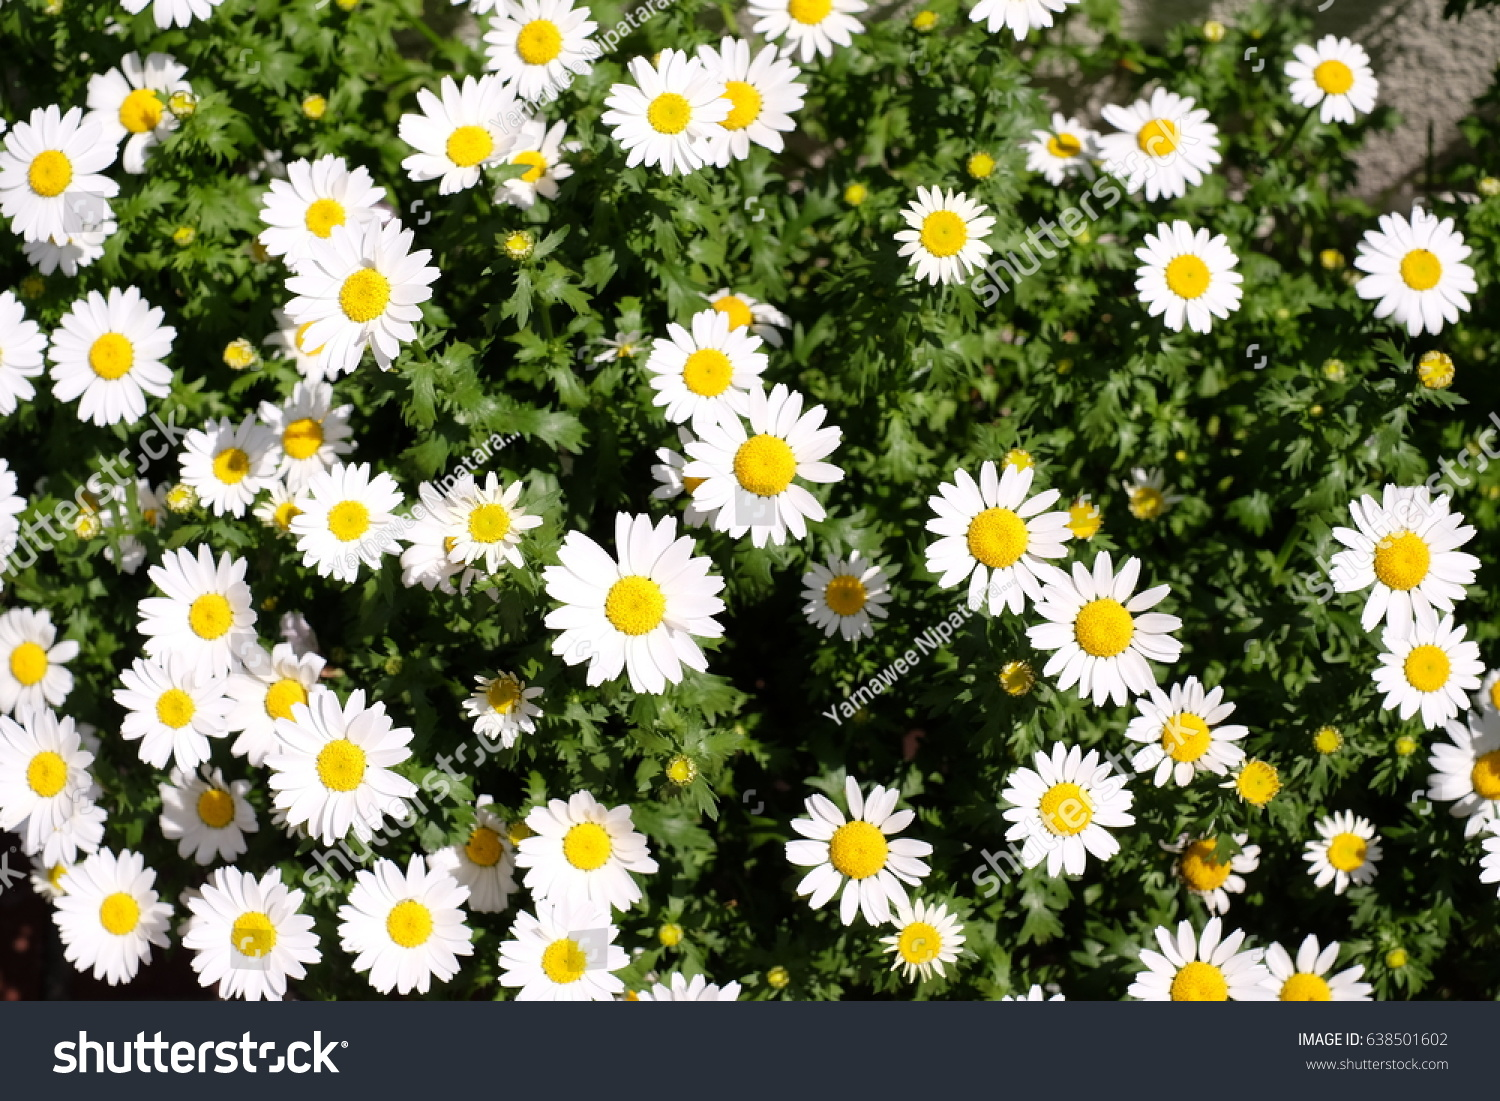 Top view daisy flowers stock photo edit now 638501602 shutterstock top view of daisy flowers izmirmasajfo